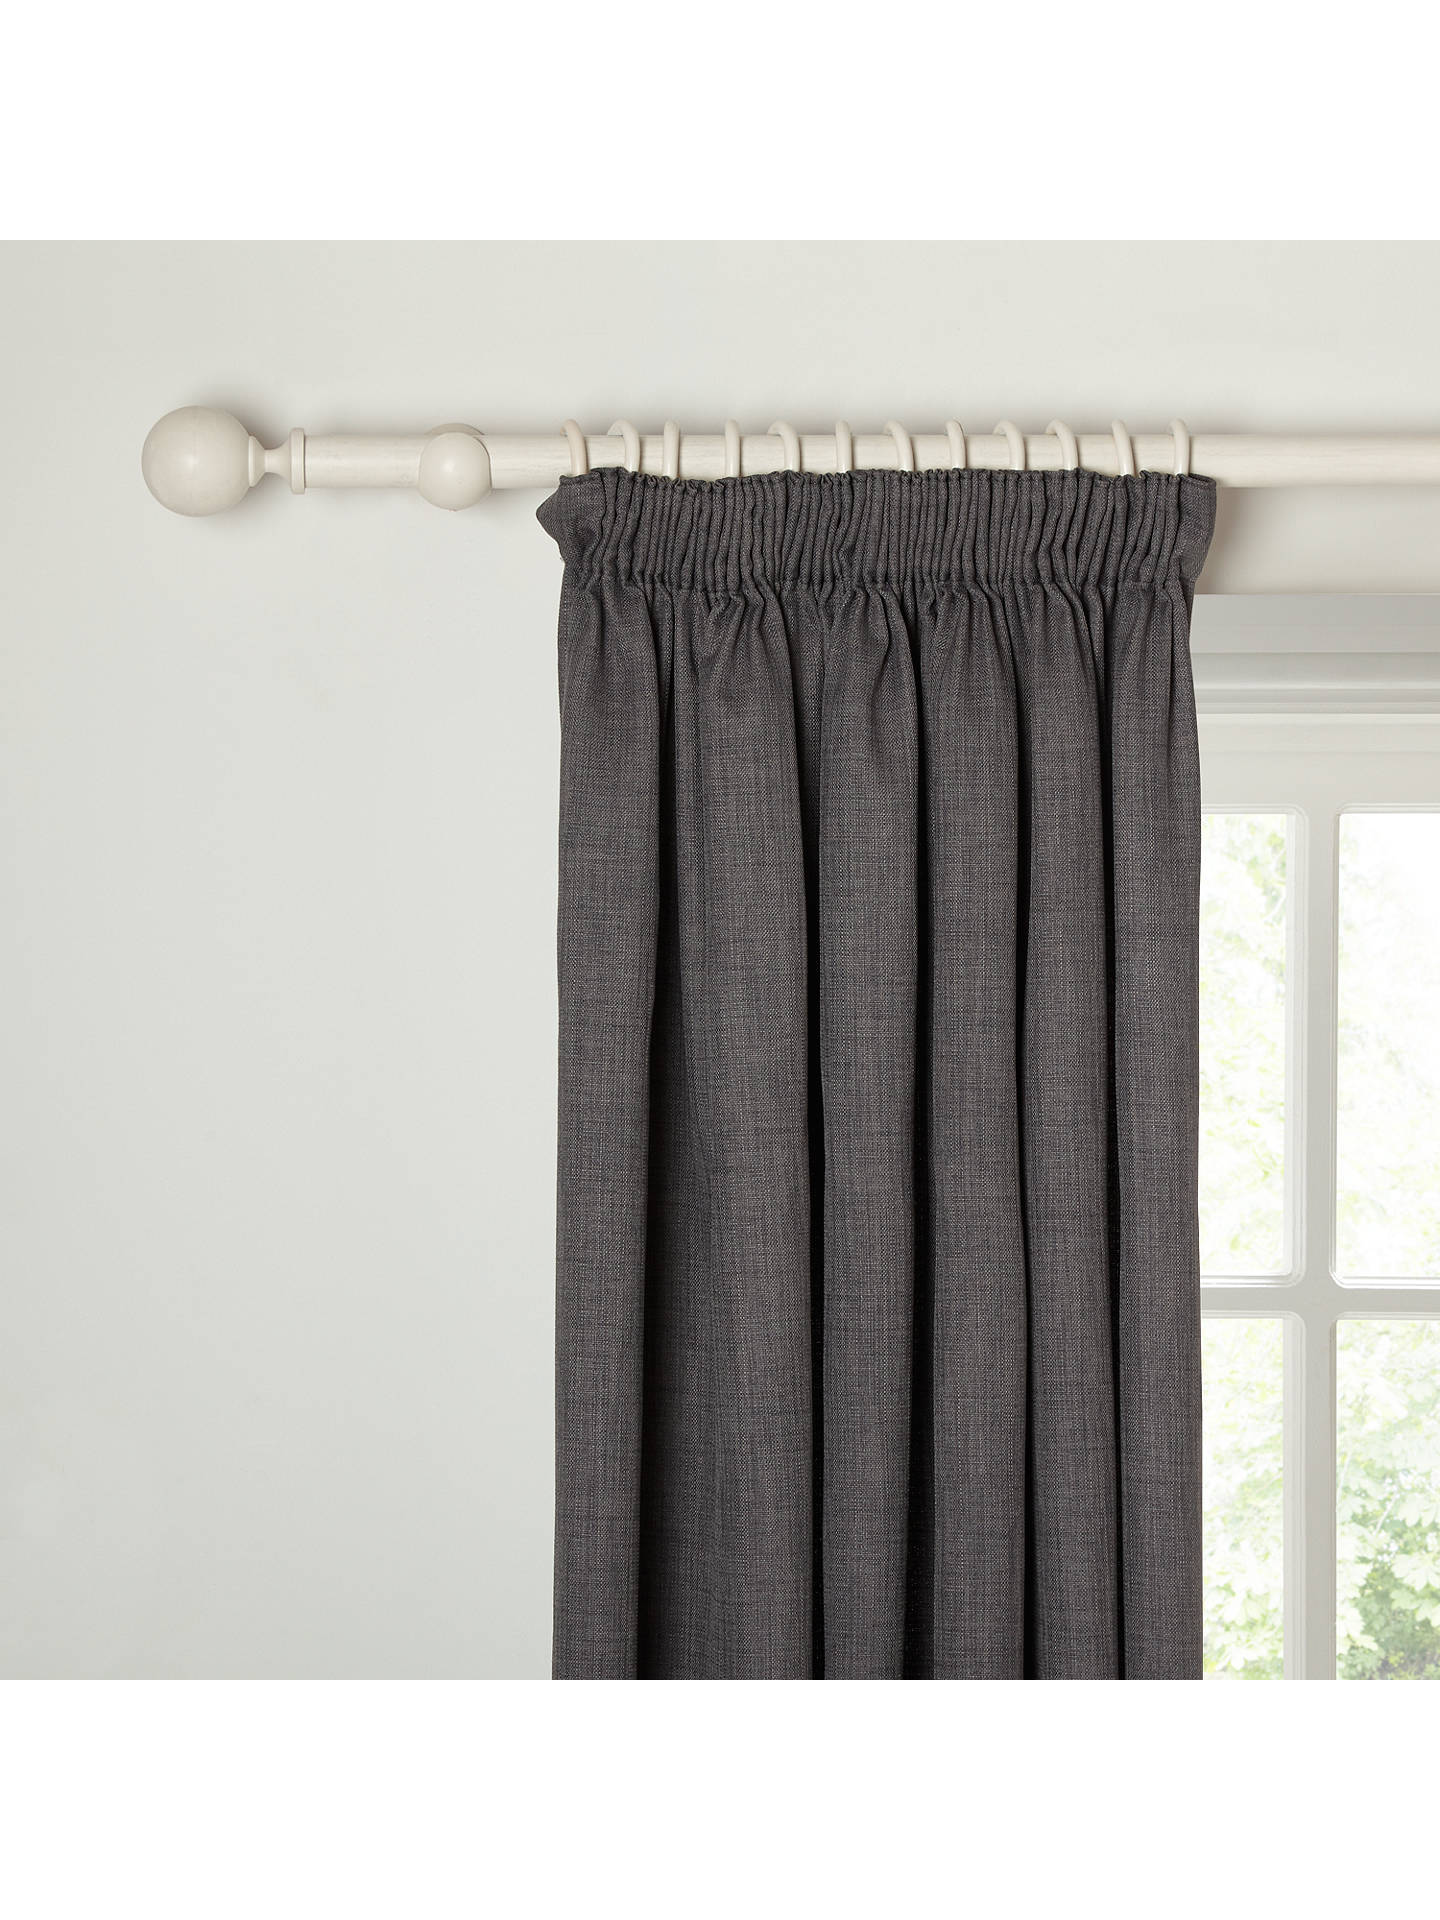 Buy John Lewis & Partners Barathea Pair Blackout Lined Pencil Pleat Curtains, Steel, W228 x Drop 182cm Online at johnlewis.com